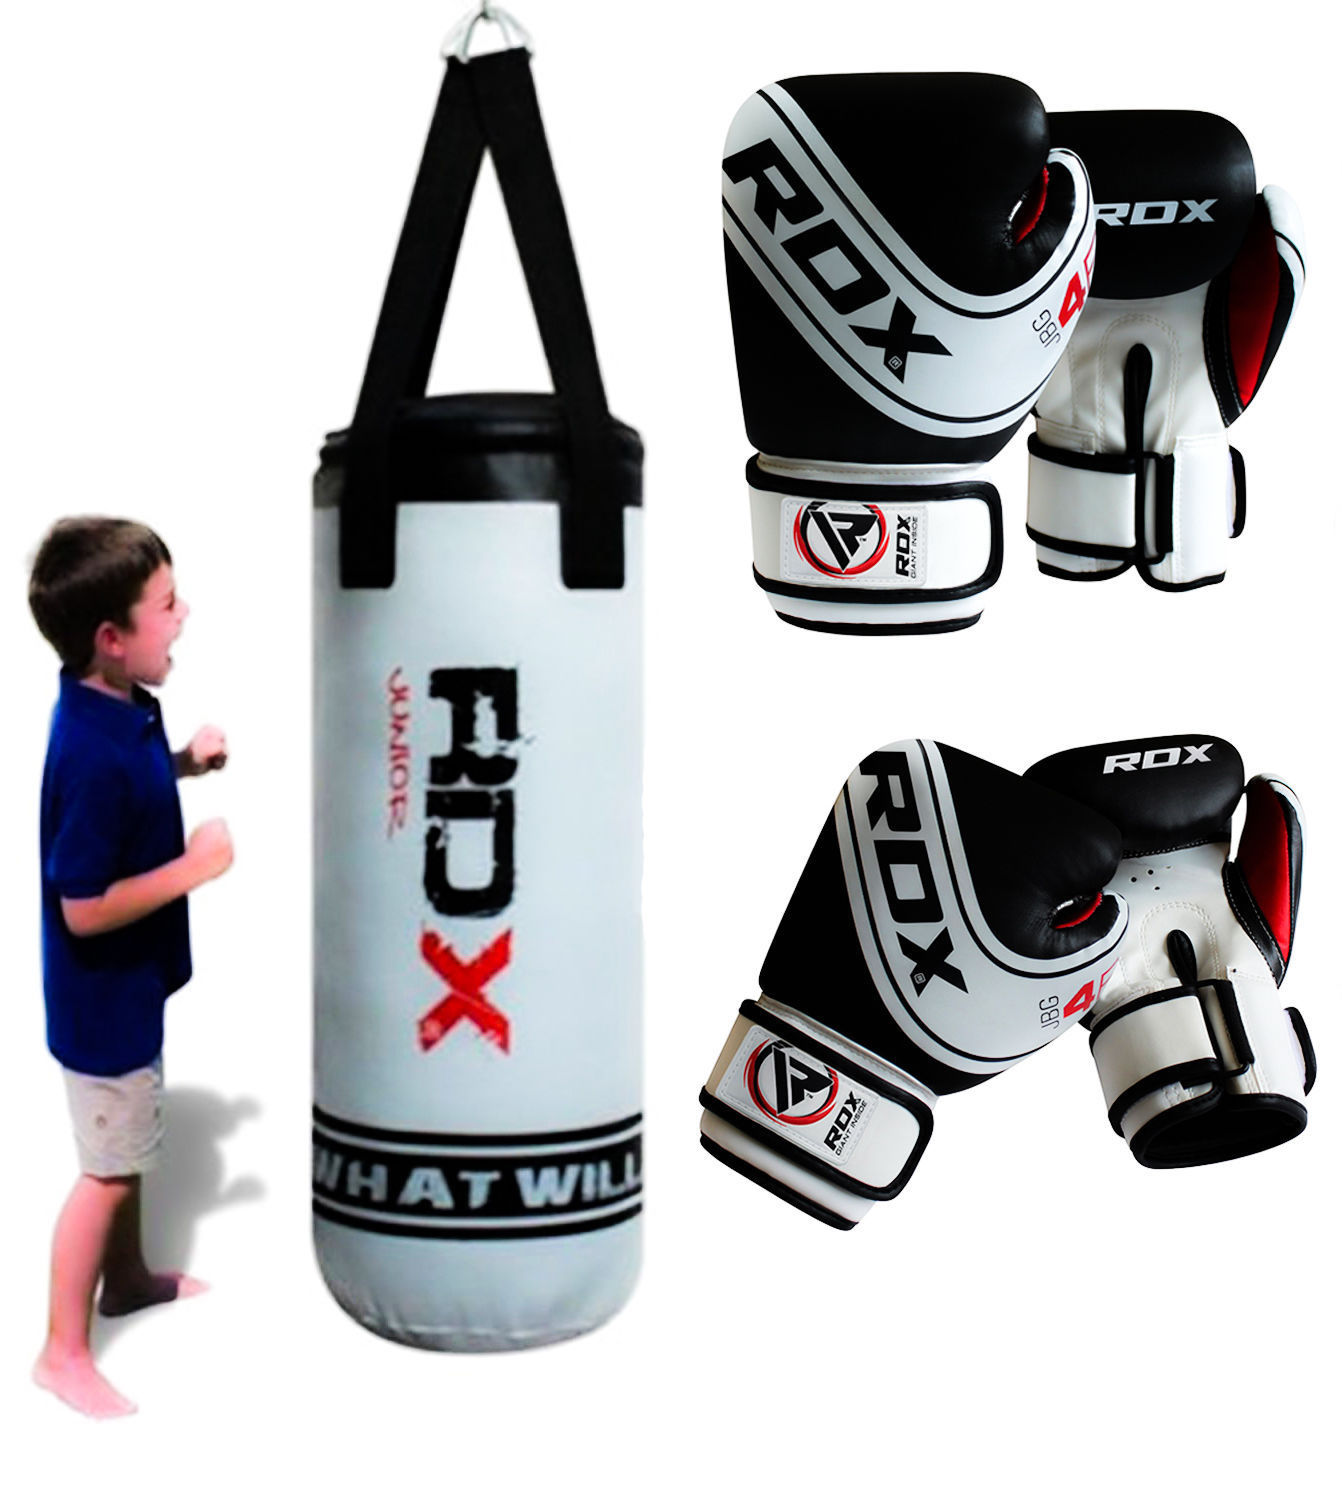 Rdx Heavy Kids Set 3ft Punching Bag Punch Youth Kick Boxing Gloves Unfilled 0